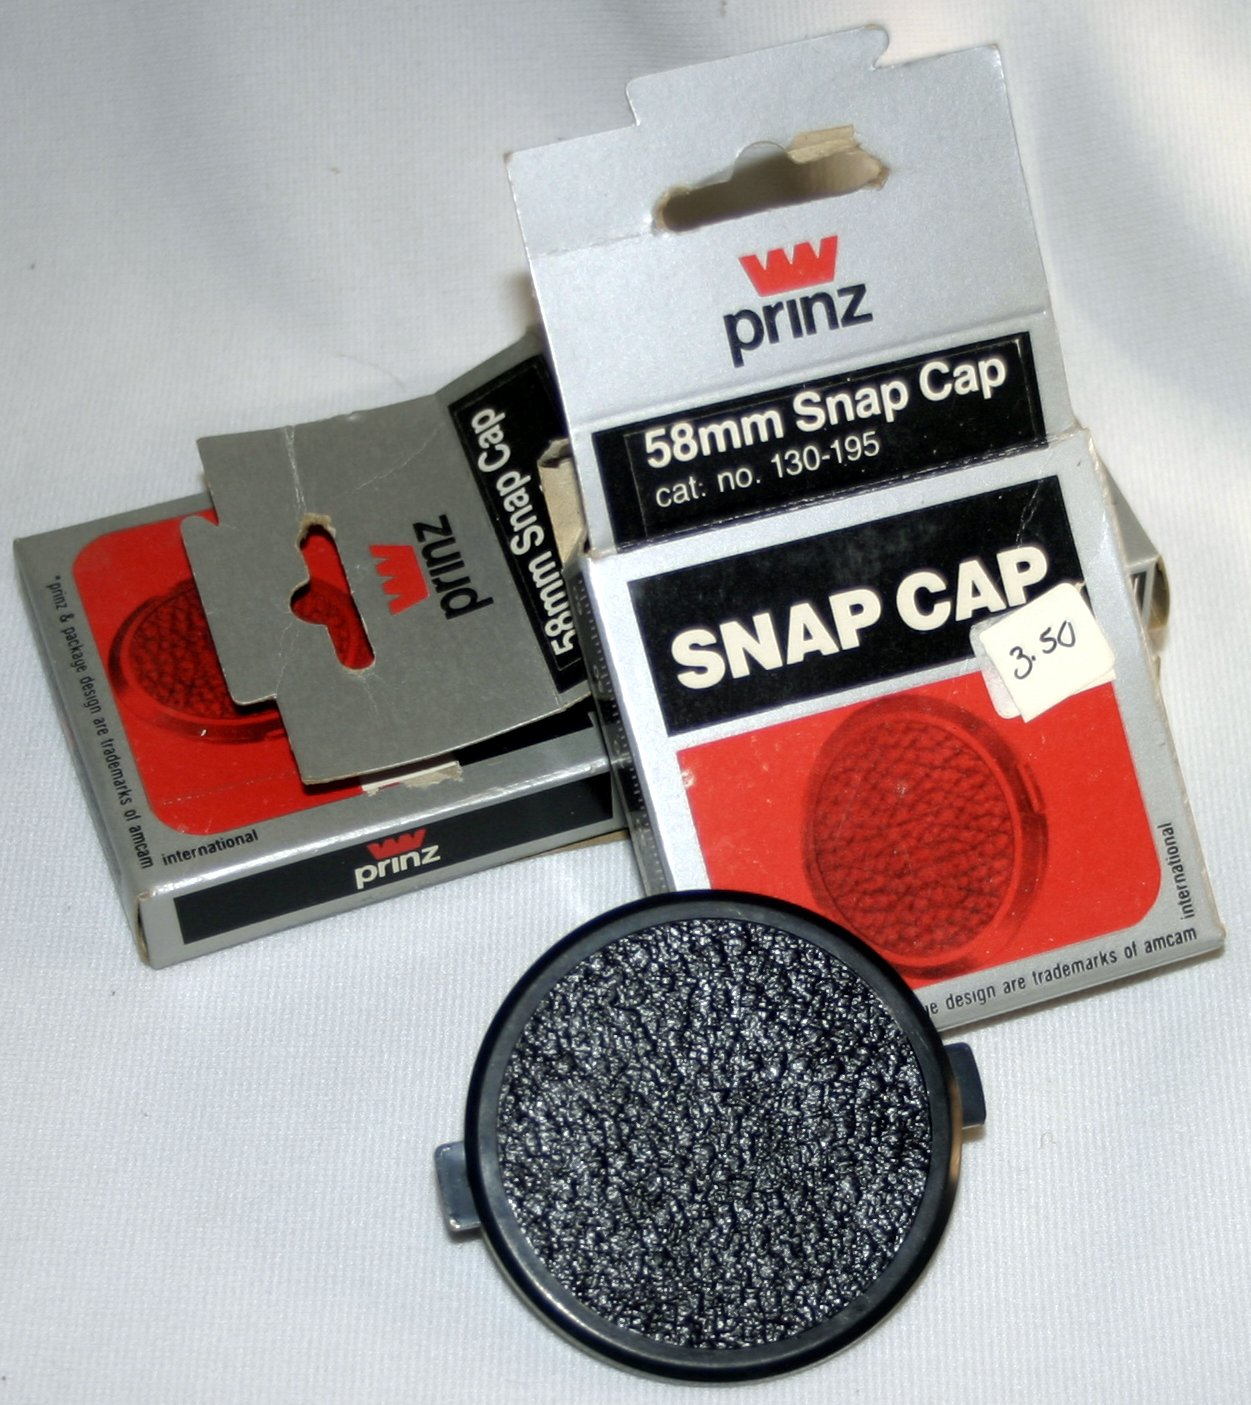 3 new Prinz 58mm Snap-on Front Lens Cap New cat.no 130-195 Cover For Canon Nikon Sigma Tamron